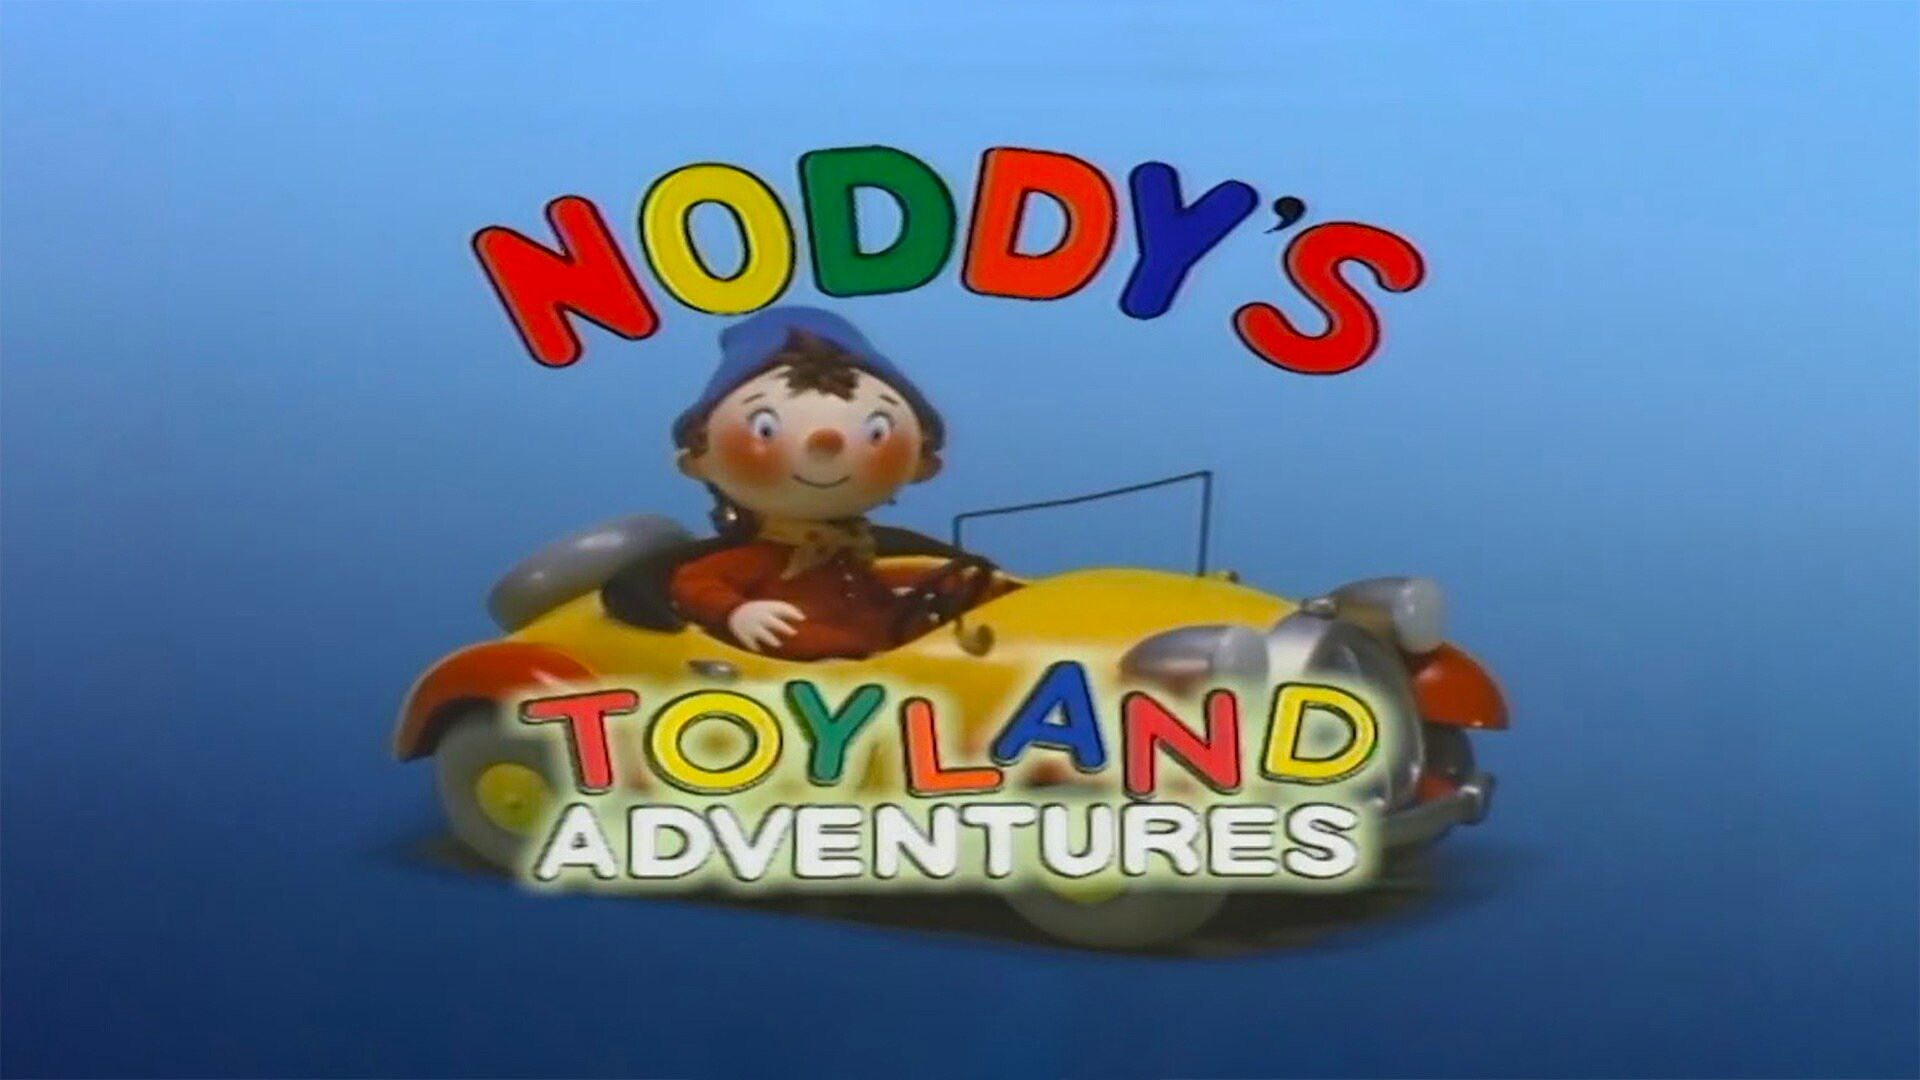 Noddy and the Goblins